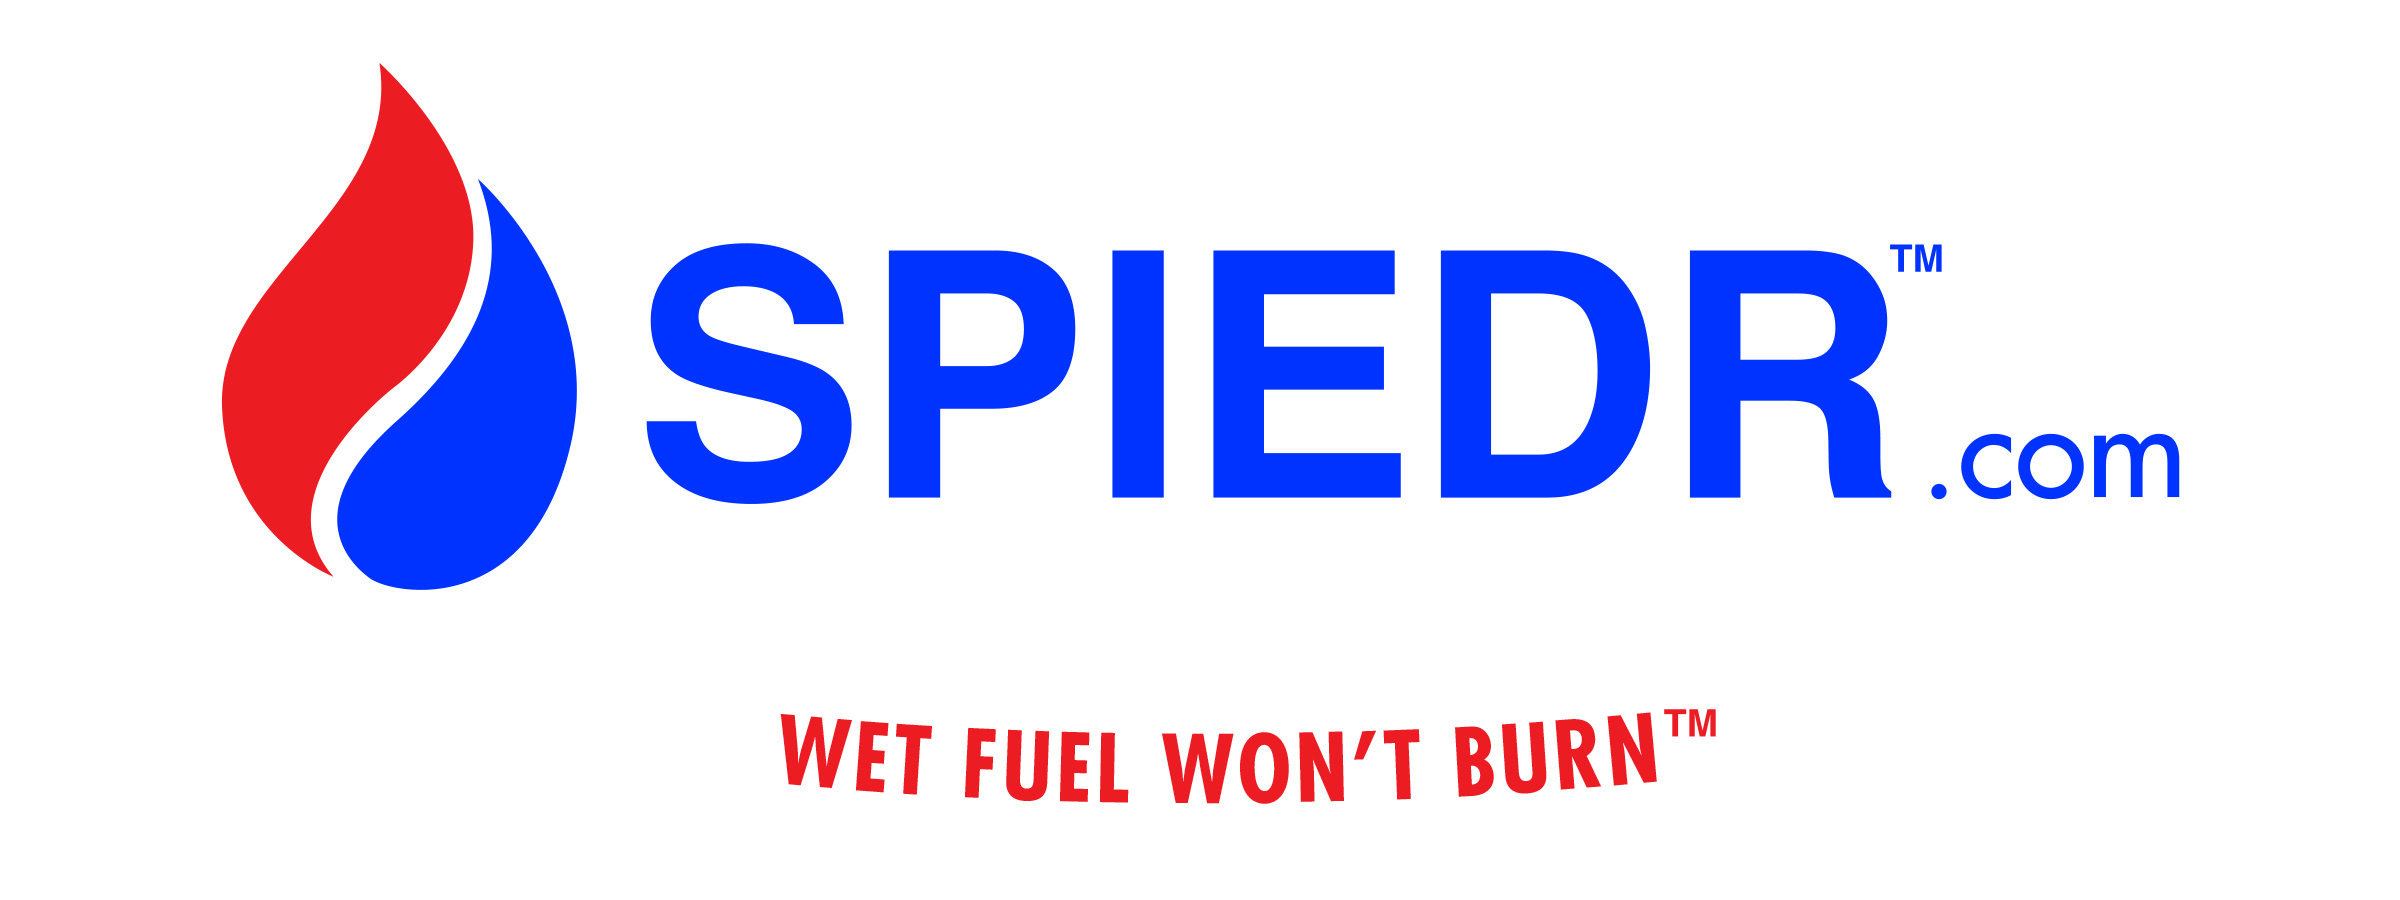 spiedr wet fuel won't burn